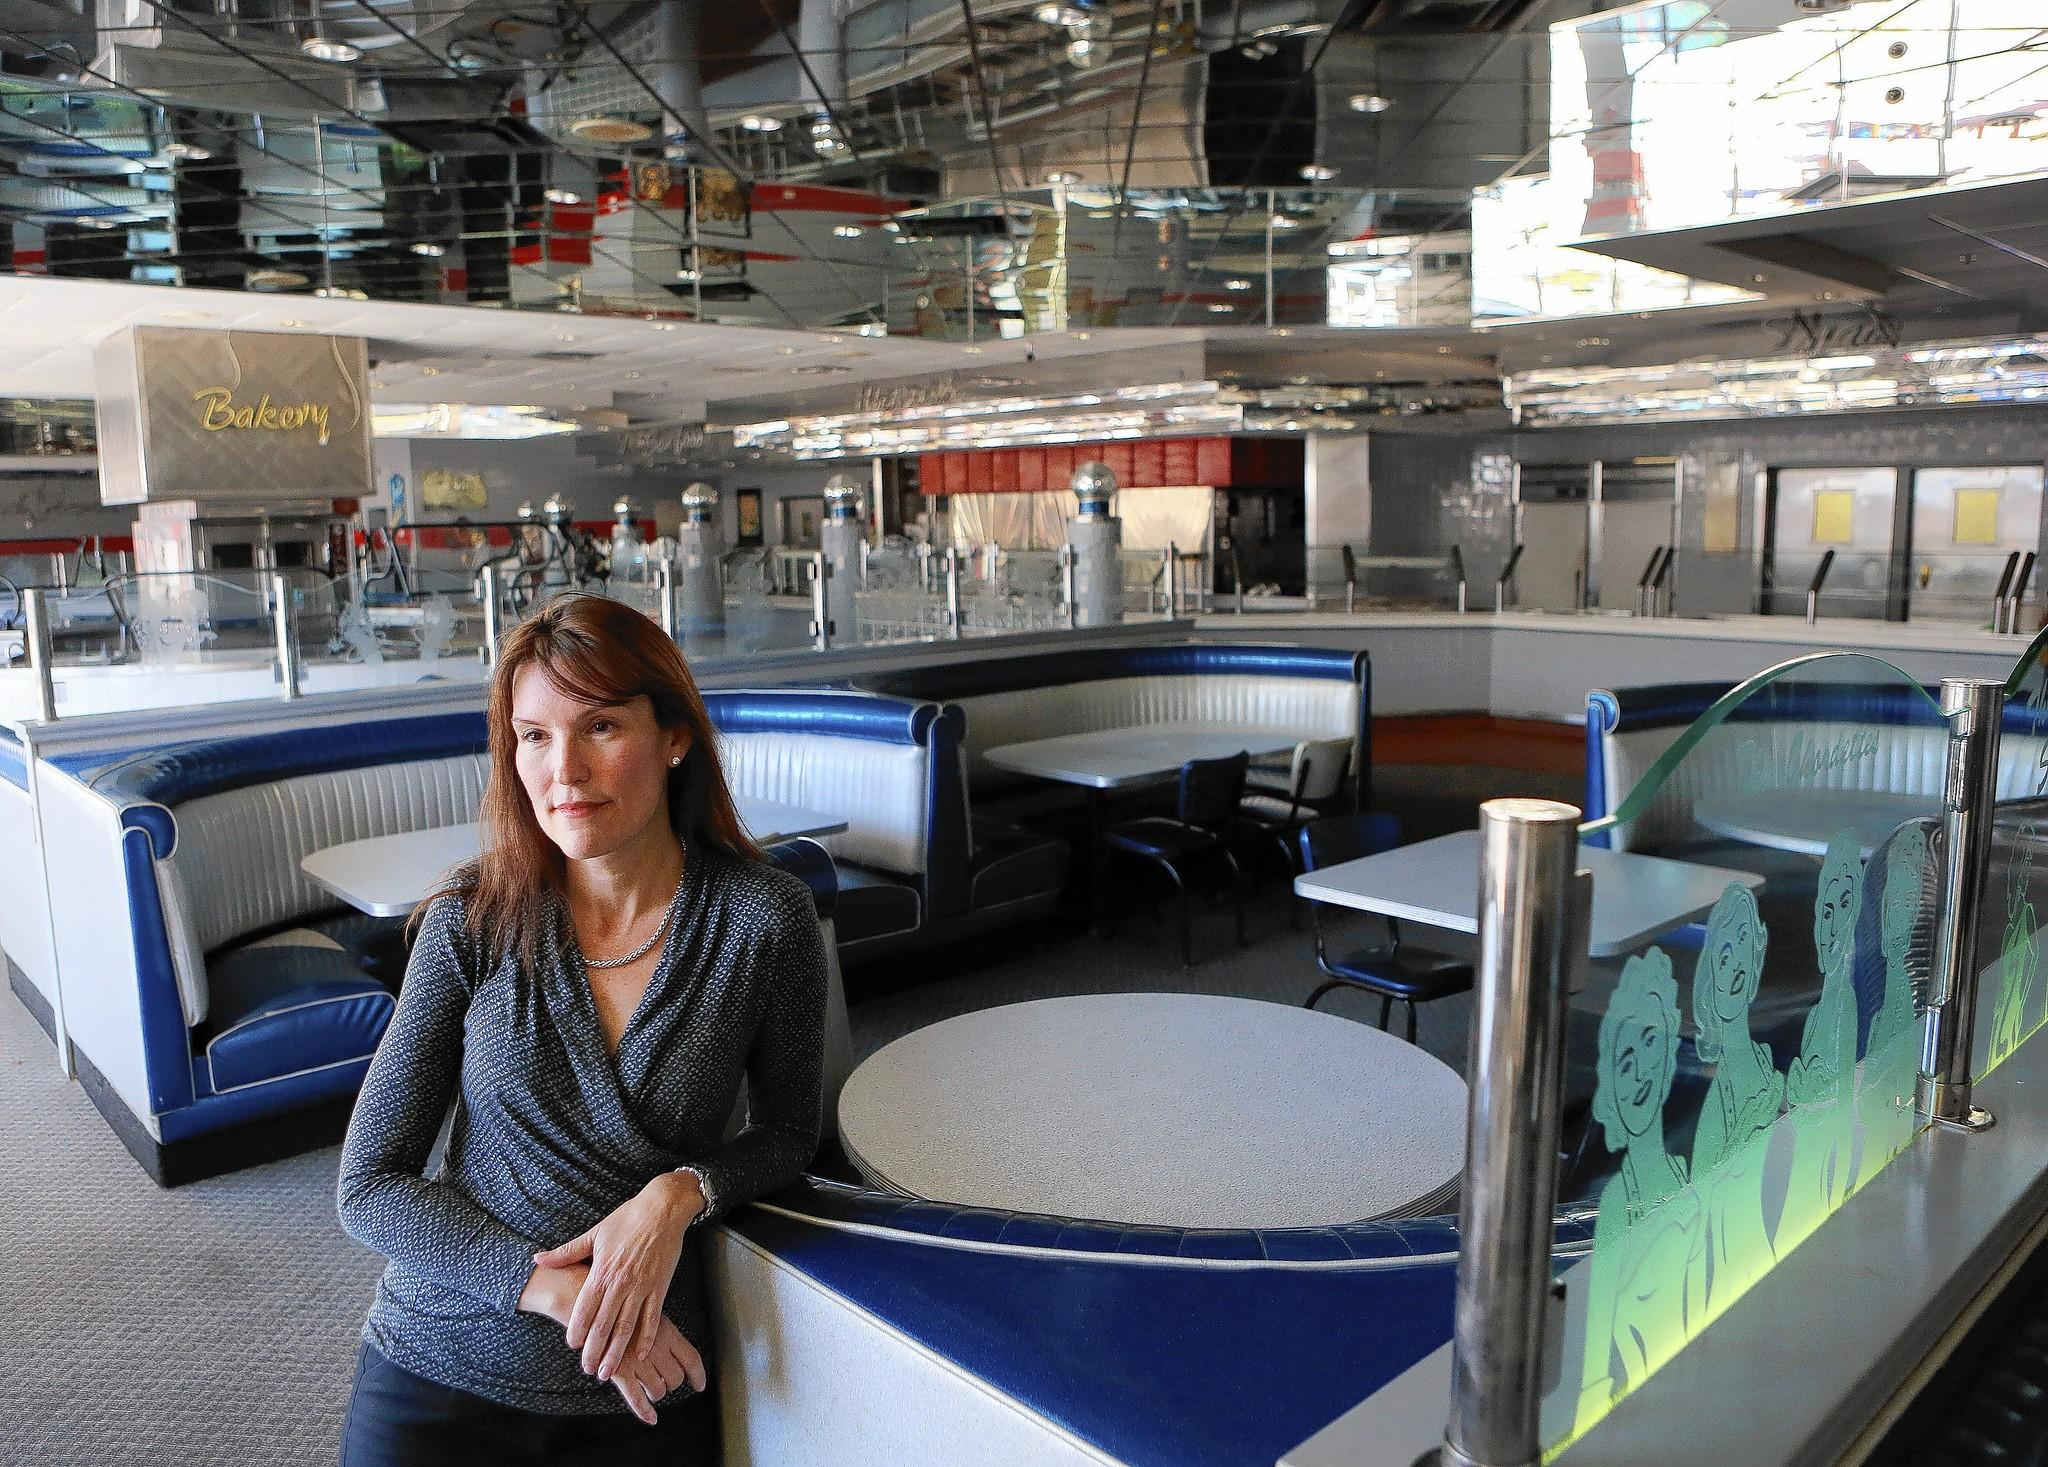 Dianna Chane stands in the now closed Angel's Lobster and Seafood Buffet inside of the Travelodge that she once owned in Kisimmee on March 13, 2013. (Jacob Langston/Orlando Sentinel)